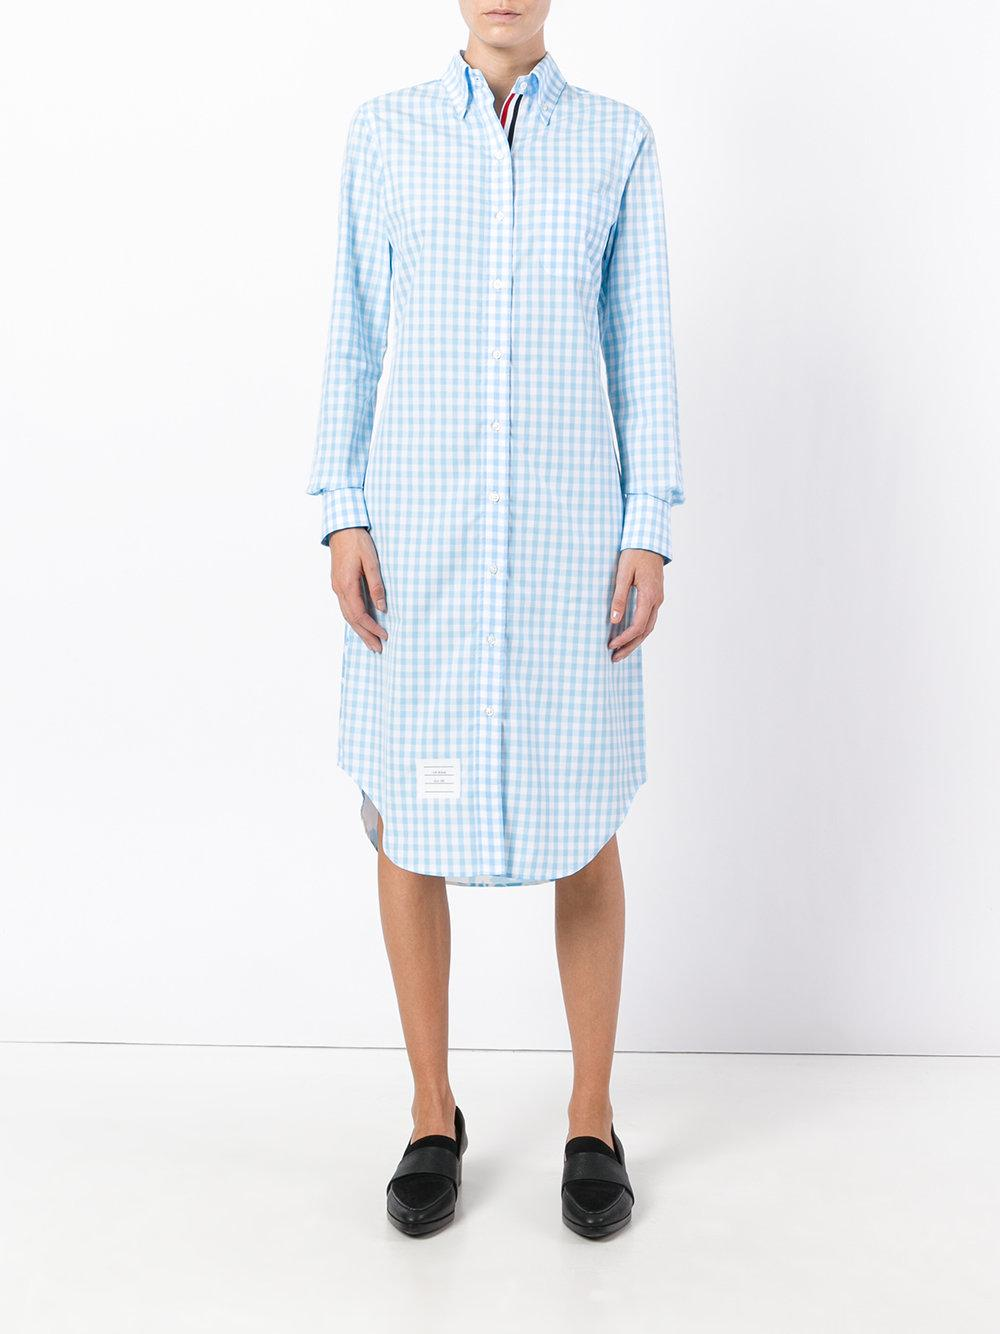 Lyst thom browne checked shirt dress in blue for Thom browne shirt sale